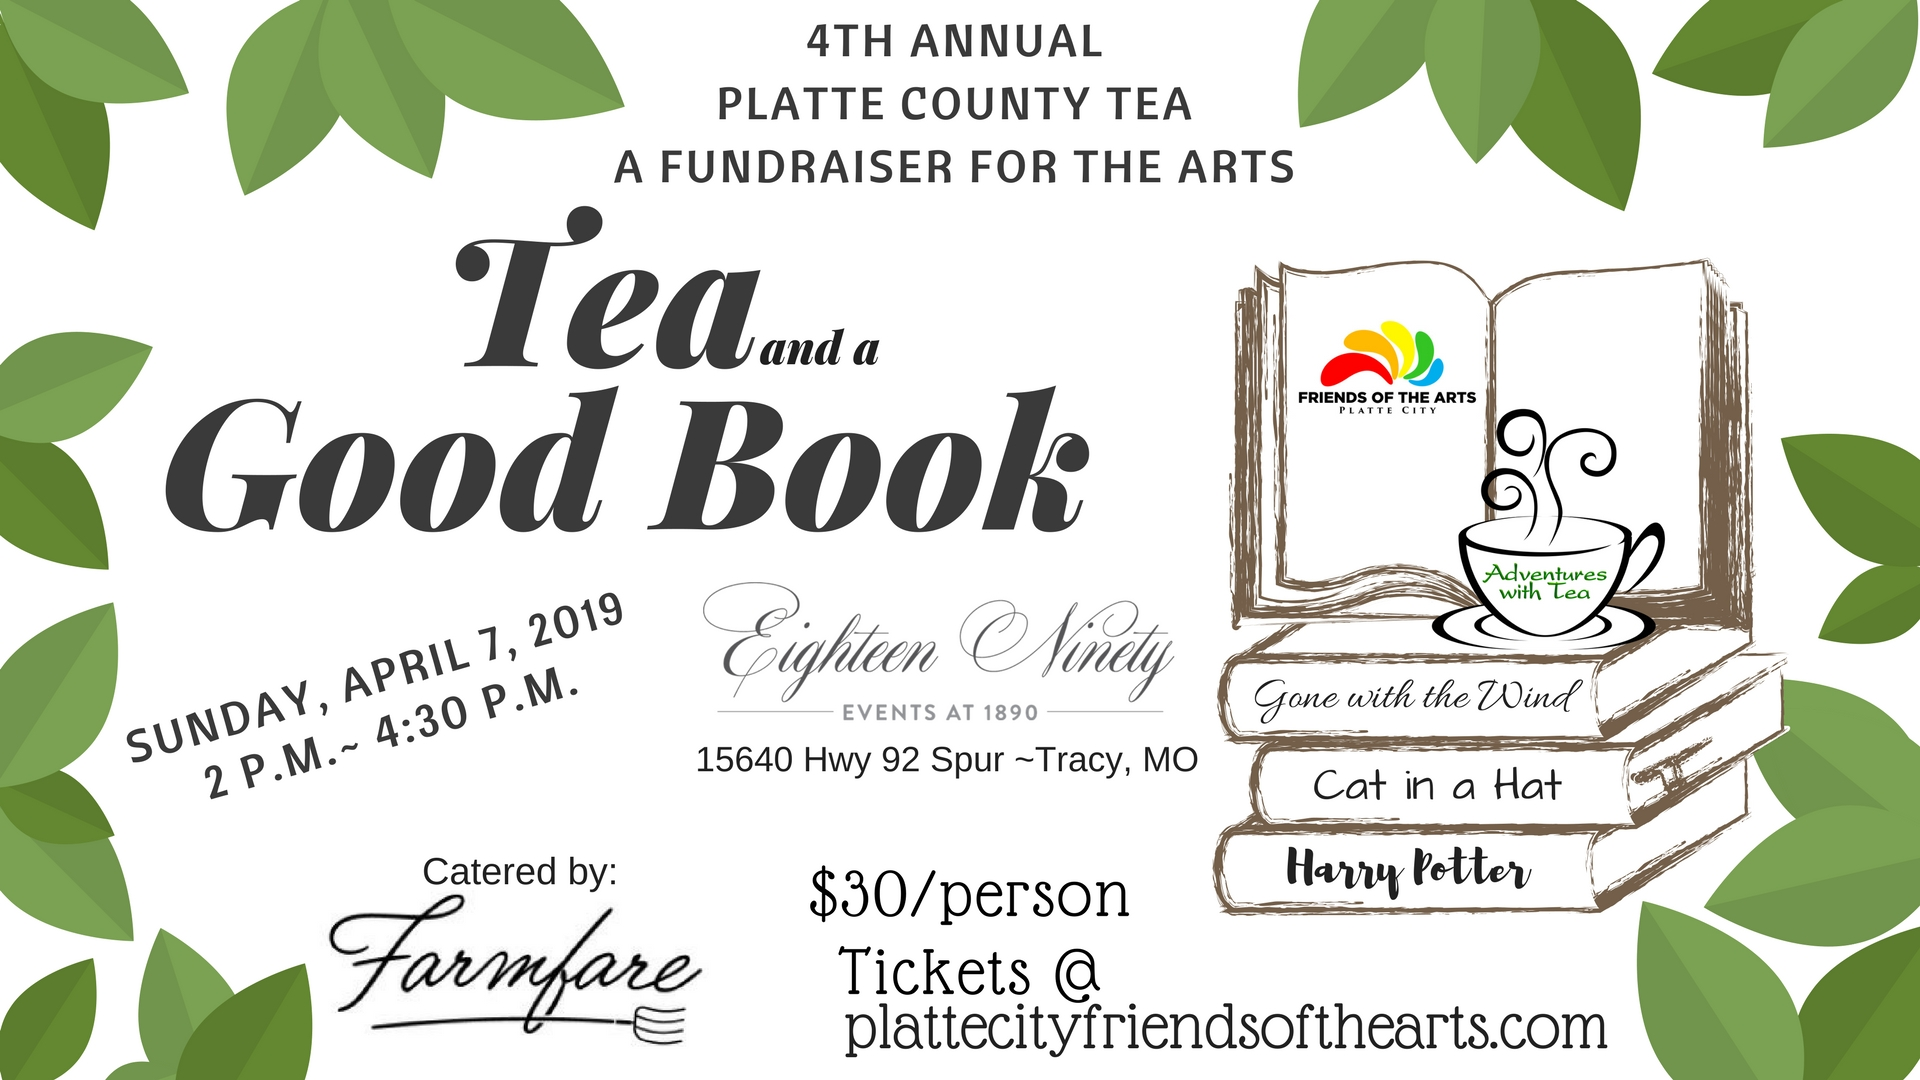 2019 Tea event header.jpg